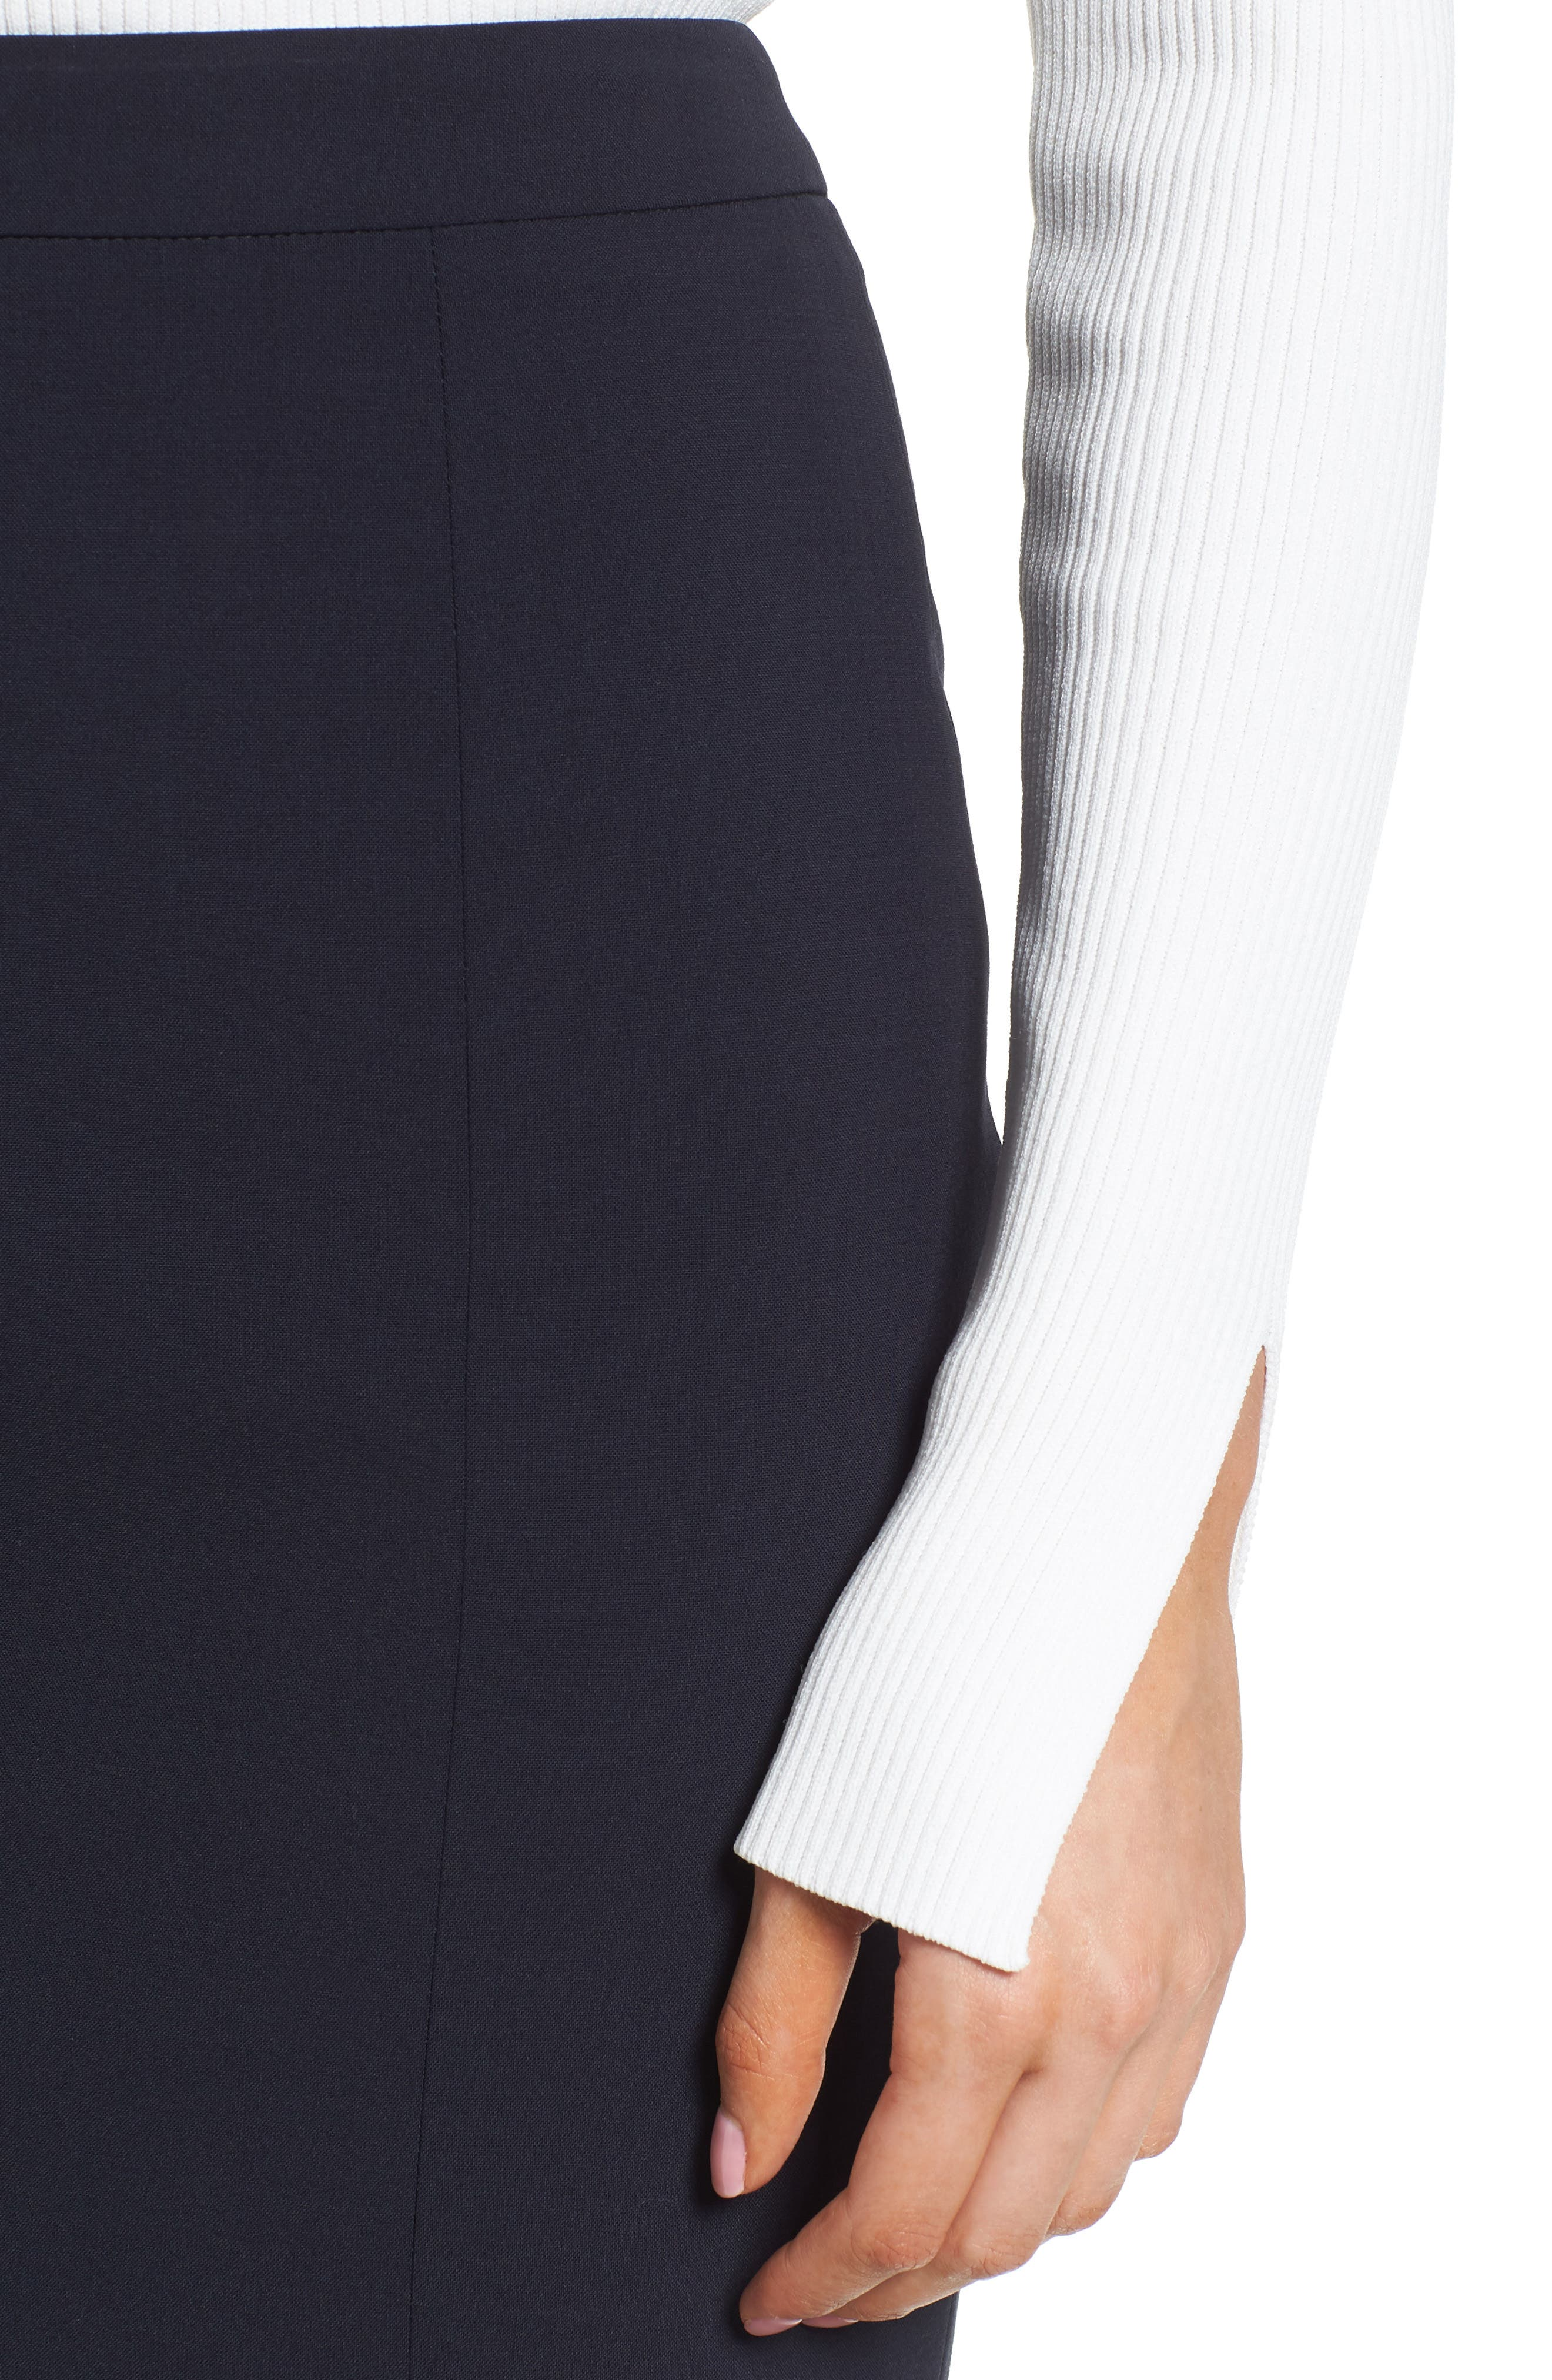 Volania Stretch Wool Side Slit Pencil Skirt,                             Alternate thumbnail 4, color,                             Navy